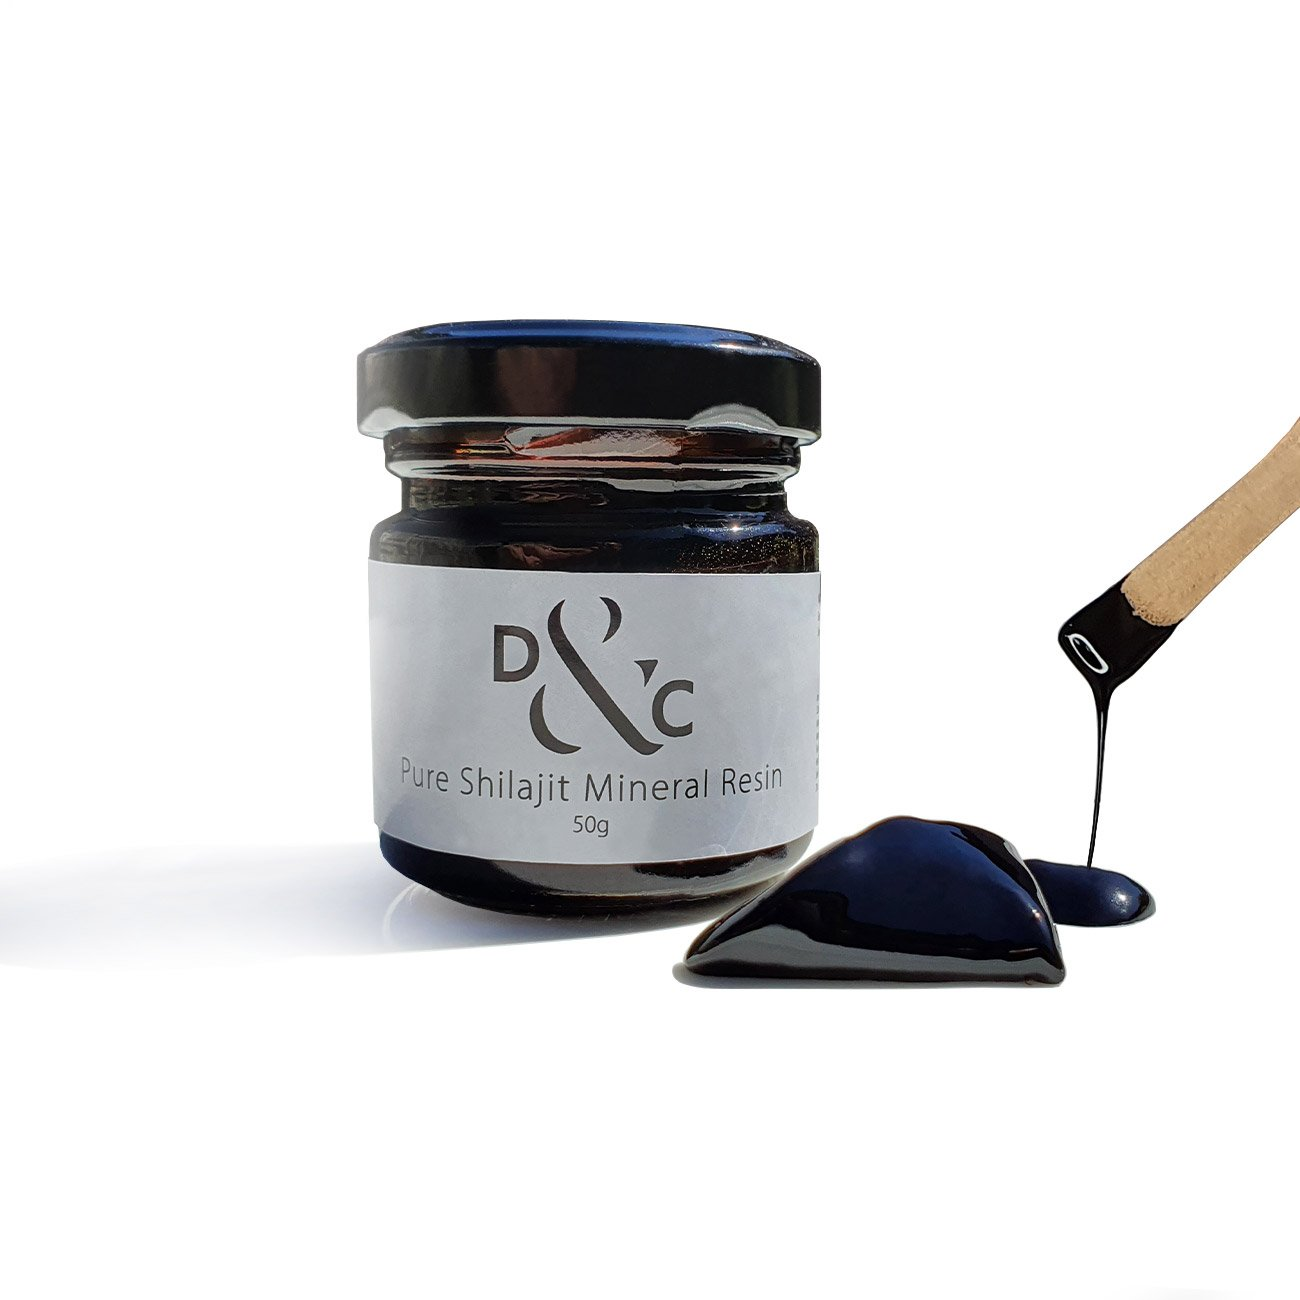 Pure Shilajit Mineral Resin Australia 50g in a jar with dip stick. 100 portions per jar. Also known as shilajit, mumijo, and momia.